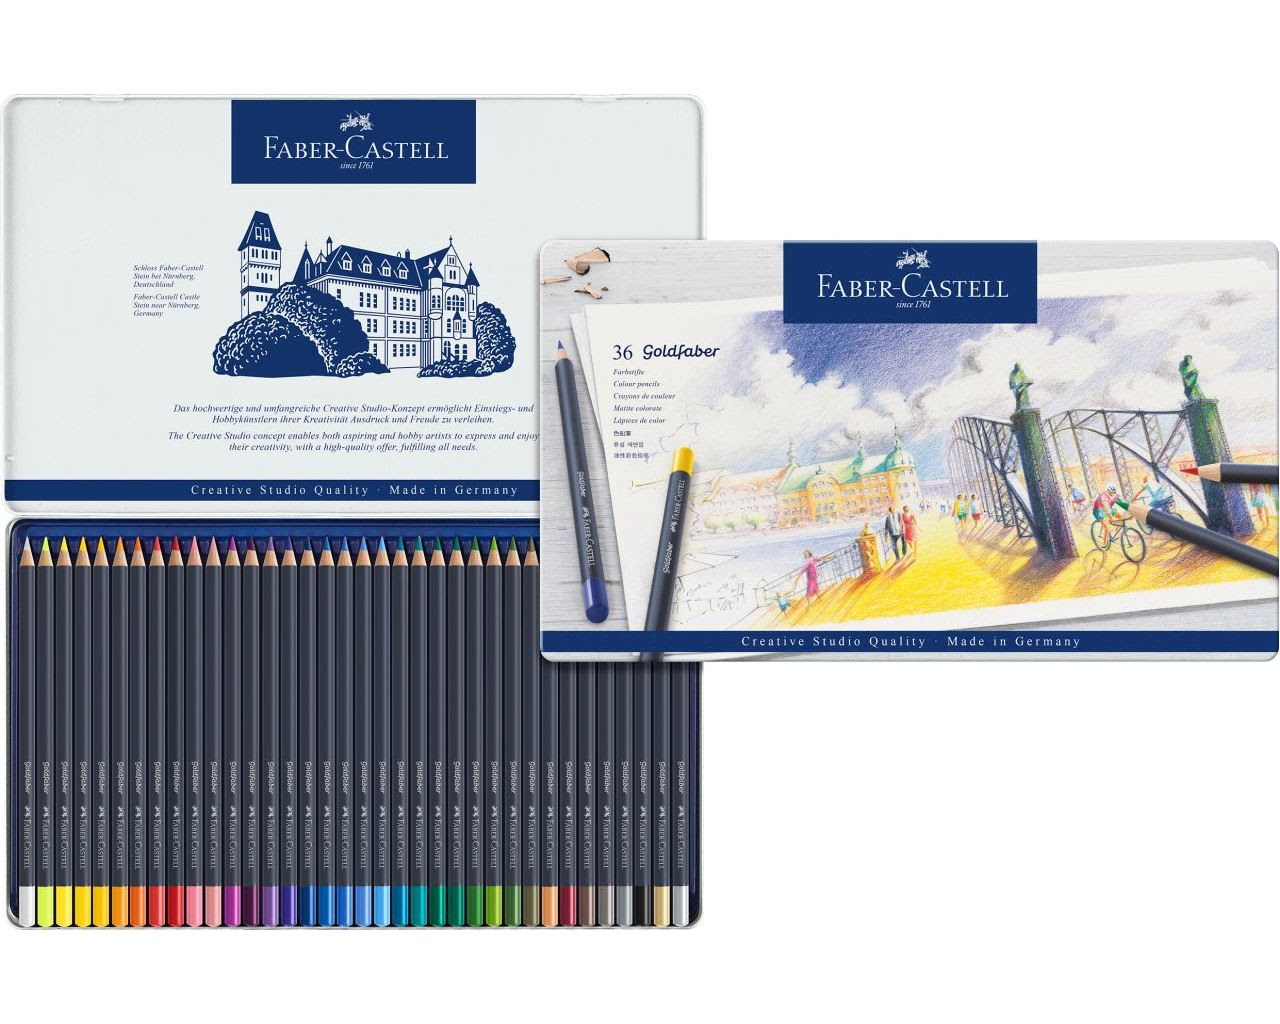 Faber Castell Creative Studio Goldfaber Colored Kuru Boya Kalemi 36